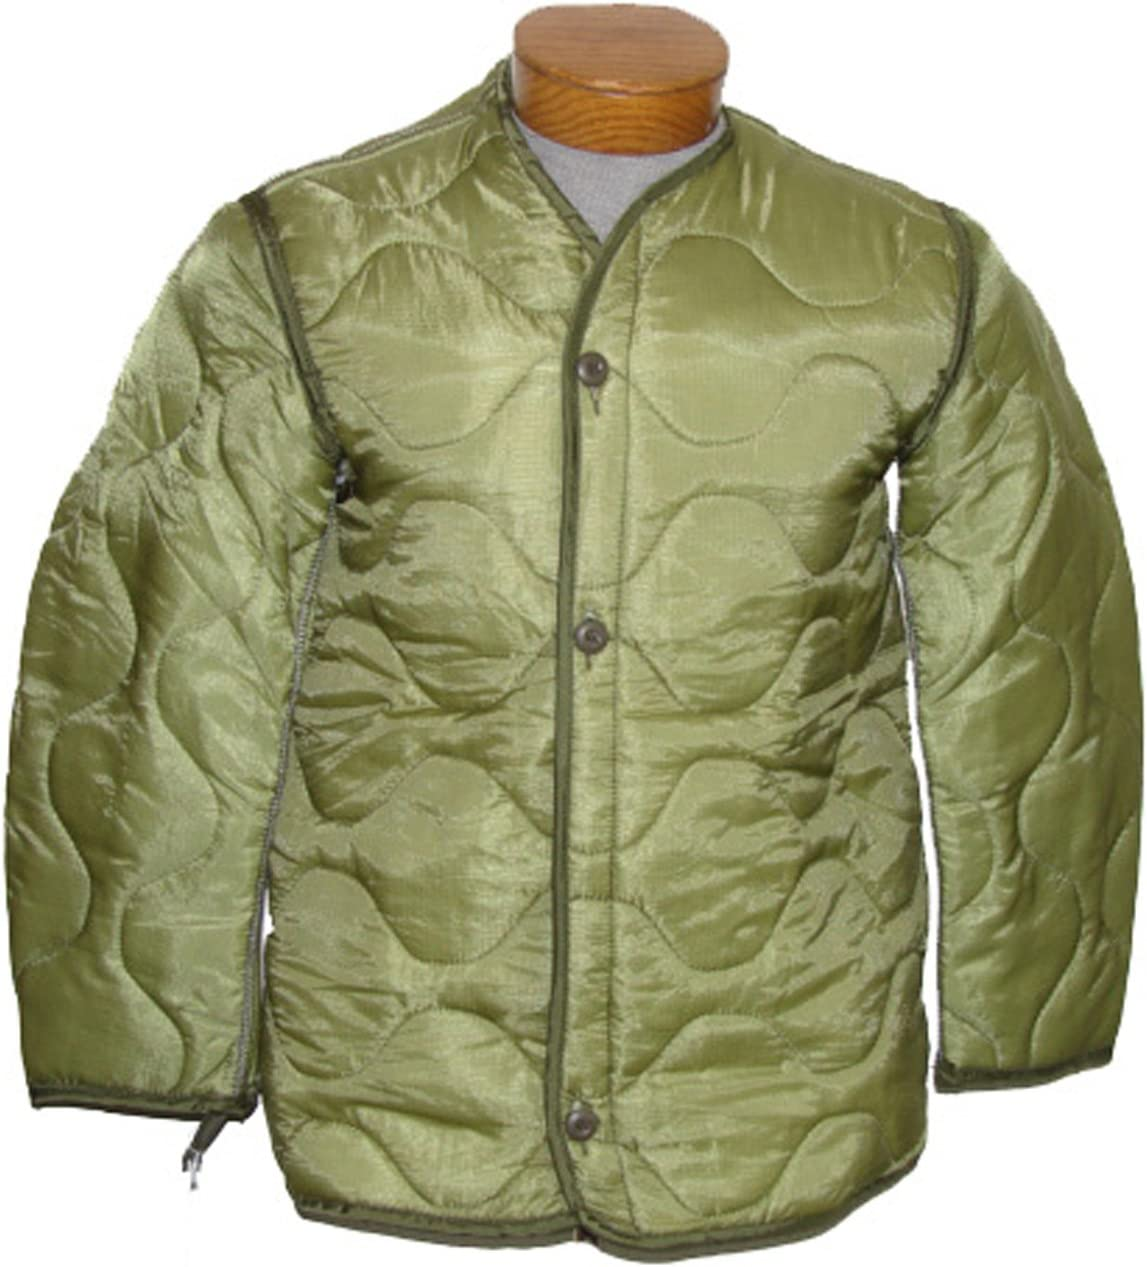 Military Outdoor Clothing Previously Issued U.S. G.I. Nylon M-65 Coat Liner: Sports & Outdoors